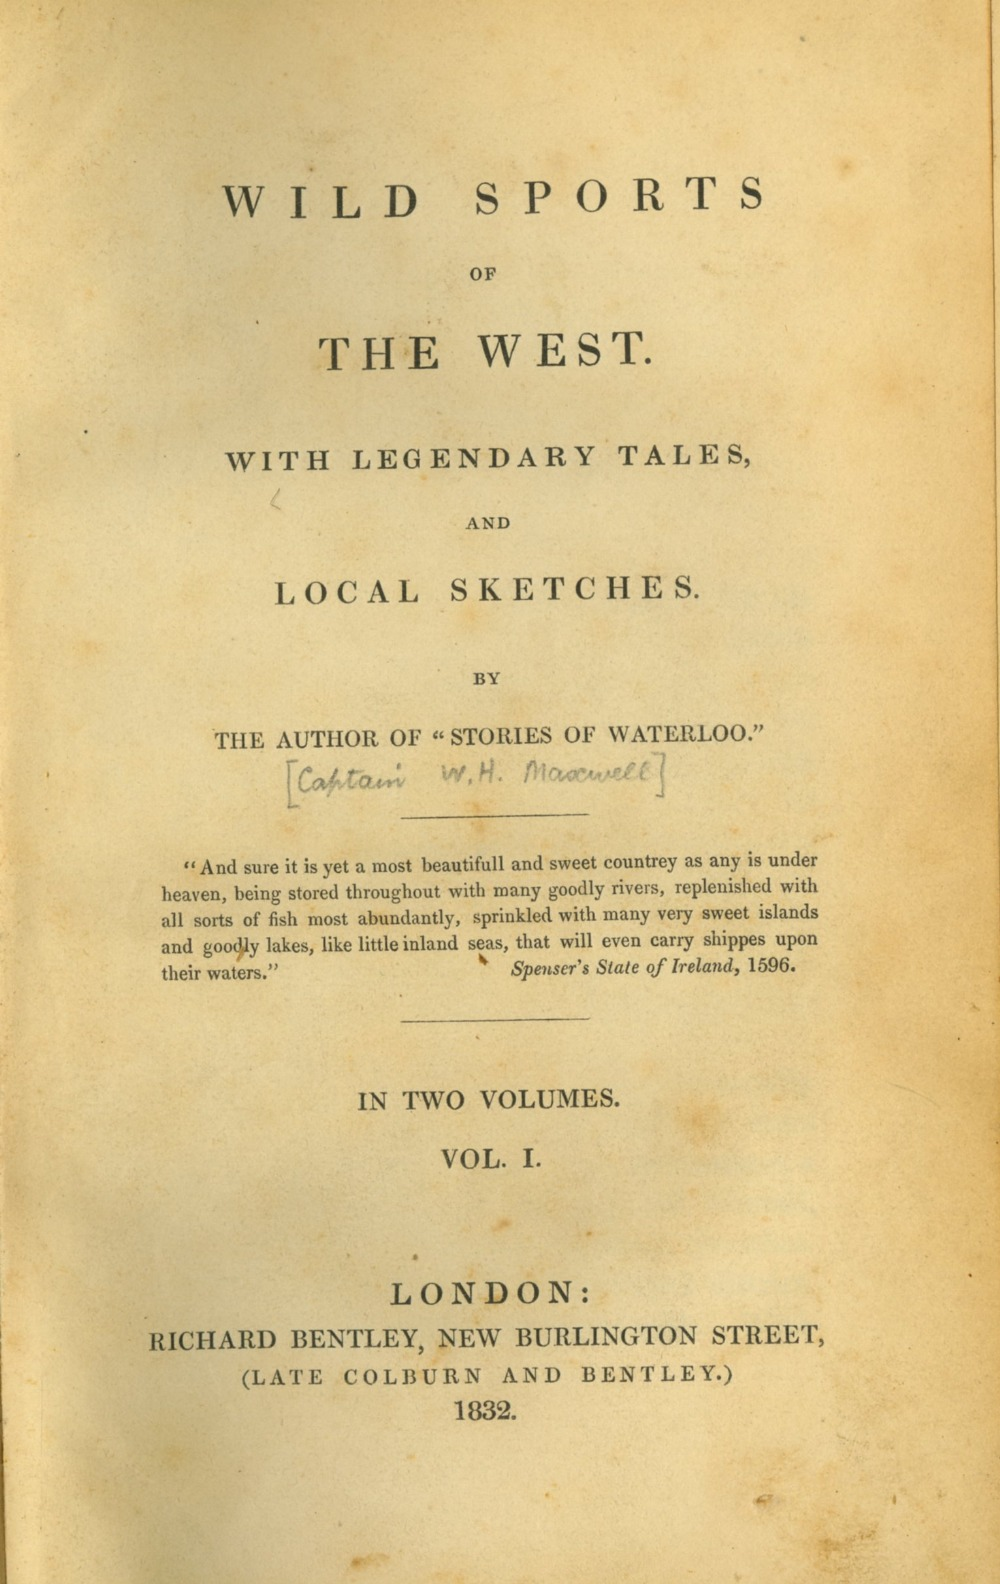 Maxwell (Capt. W.H.) Wild Sports of the West, 2 vols. 8vo L. 1832. First, 5 plts. & text illus.